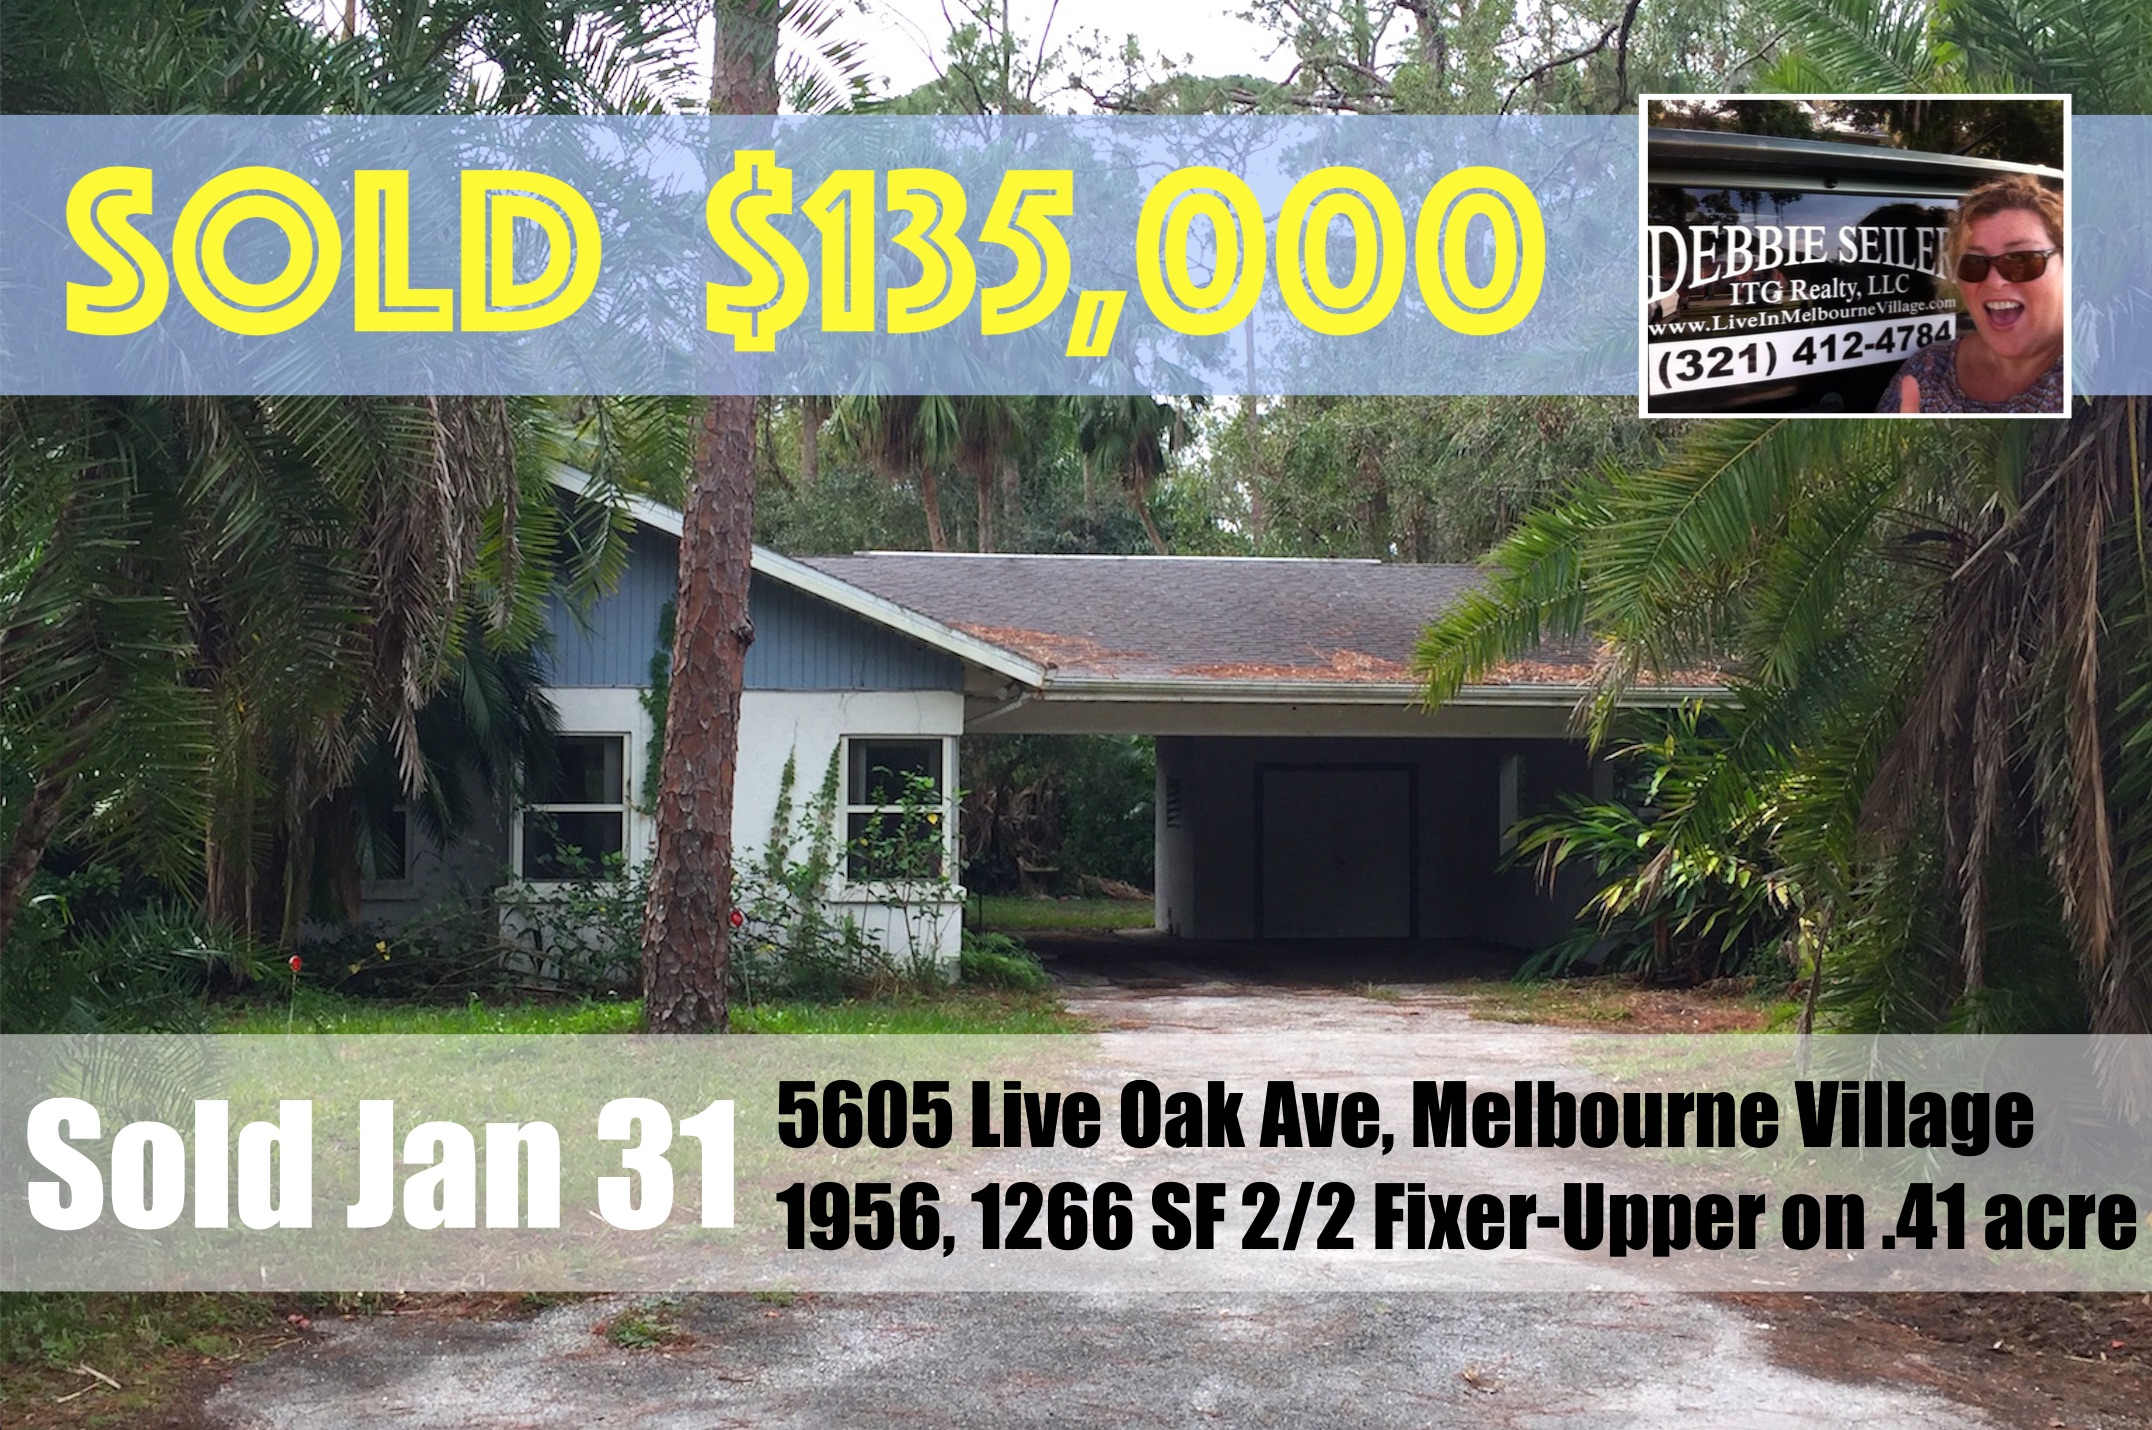 Sold Postcard 5605 Live Oak